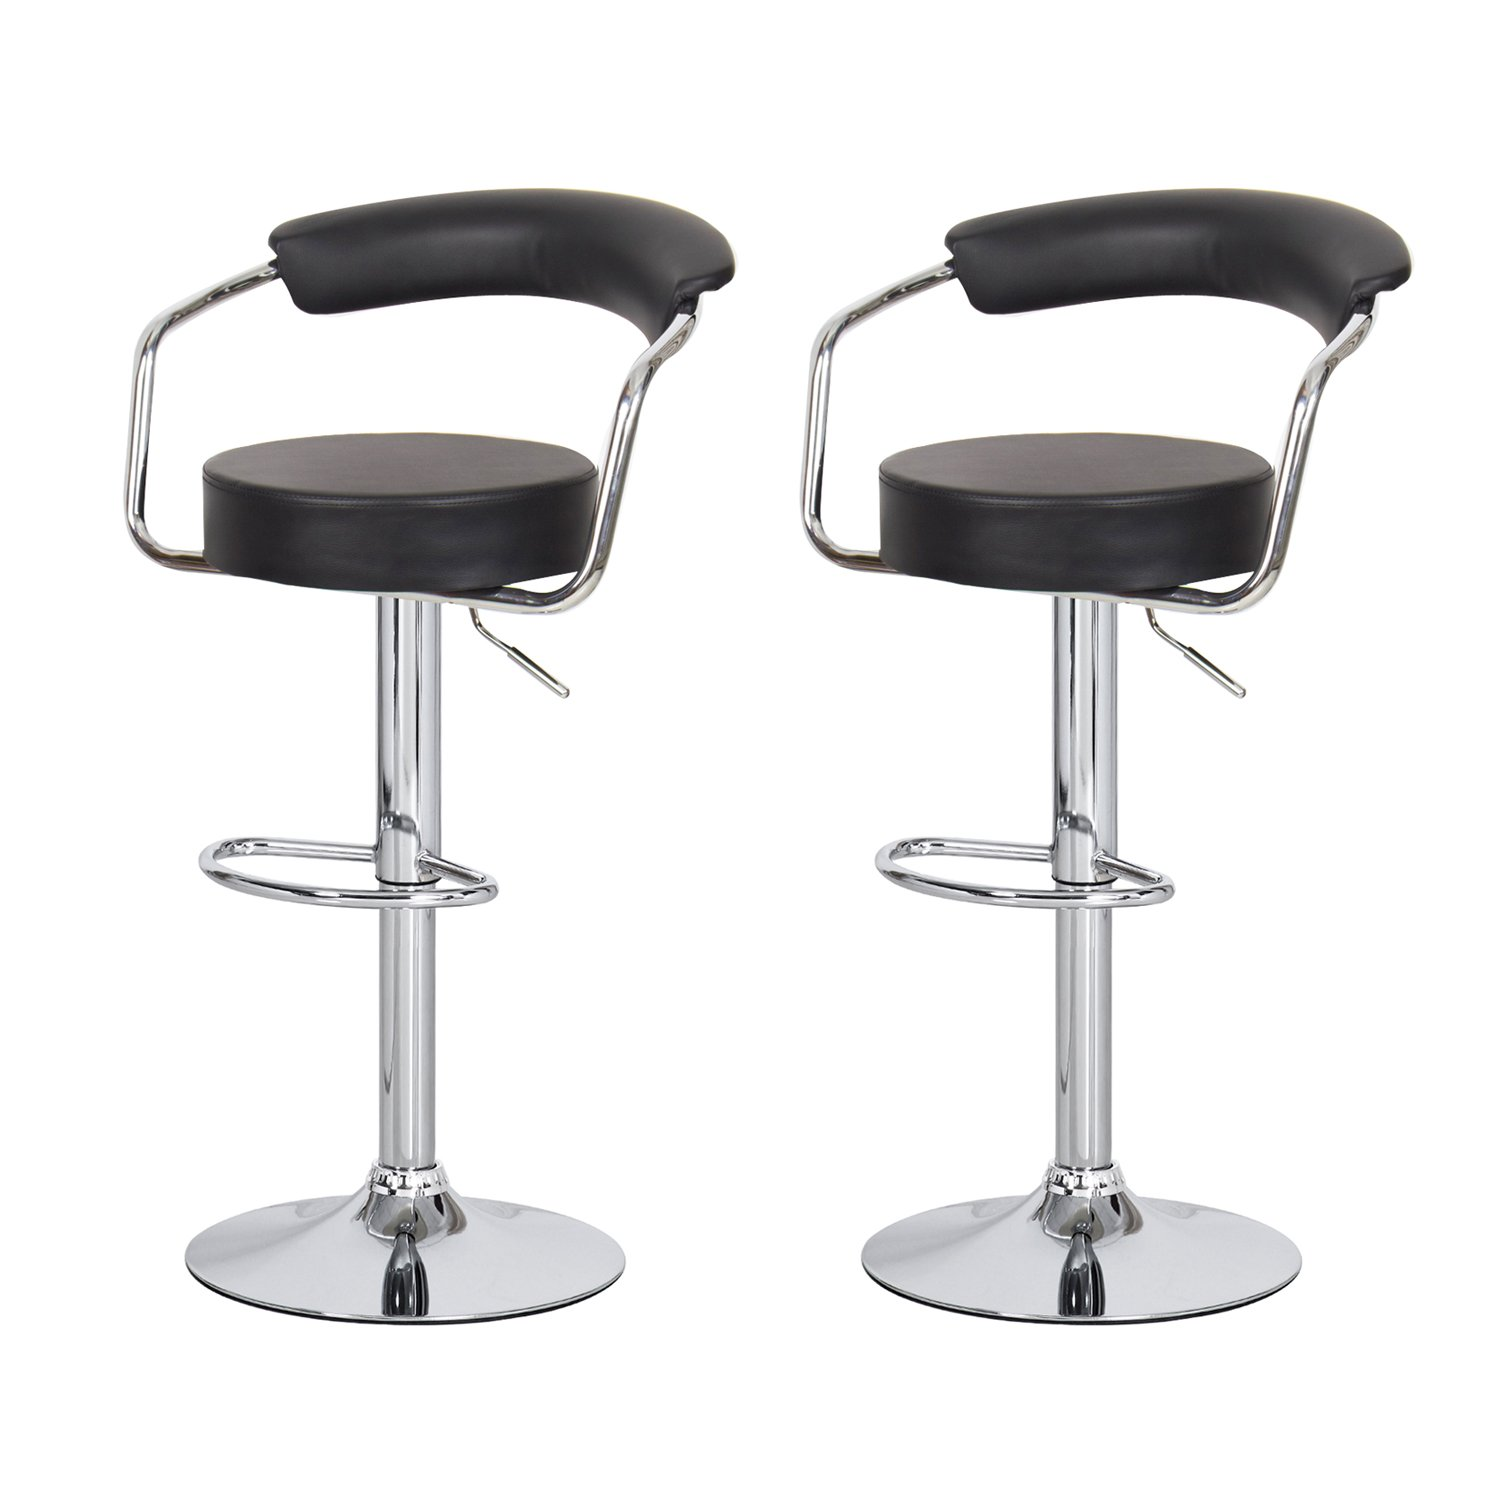 Asense Black Swivel Leathrette Mordern Adjustable Barstool Chair with Back(set of Two)